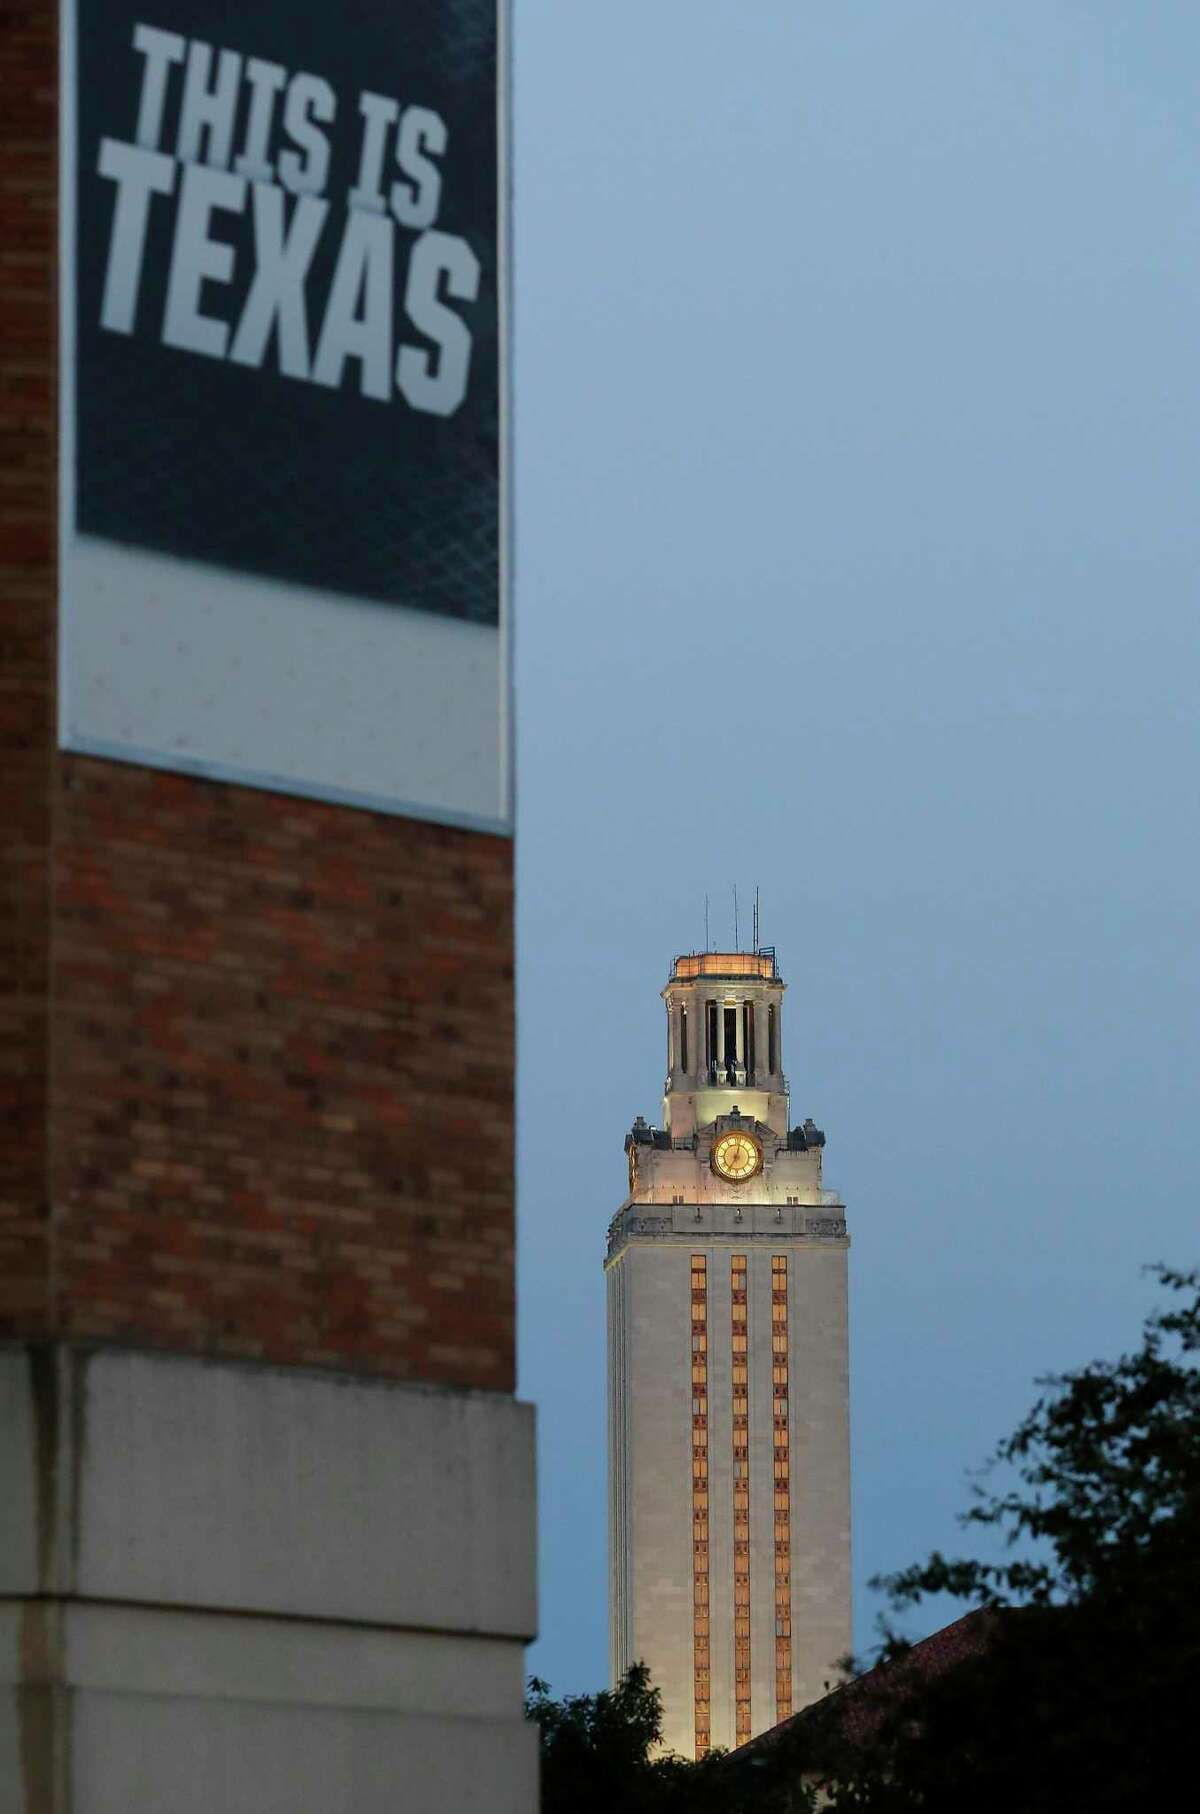 A view from afar of the University of Texas Tower at the main campus in Downtown Austin, Texas.